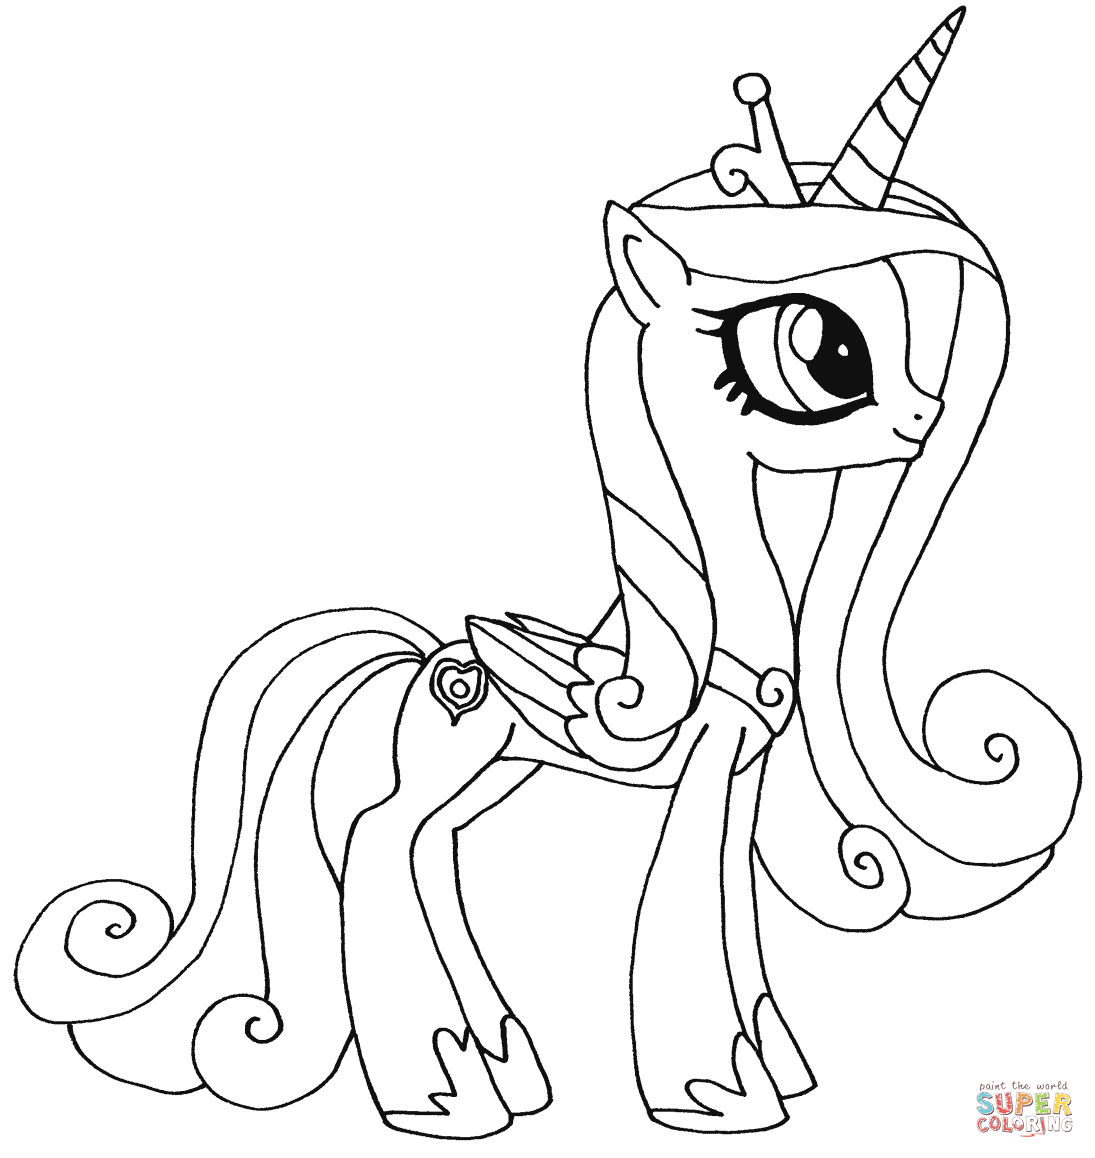 Princess Twilight Sparkle Drawing At Getdrawings Com Free For